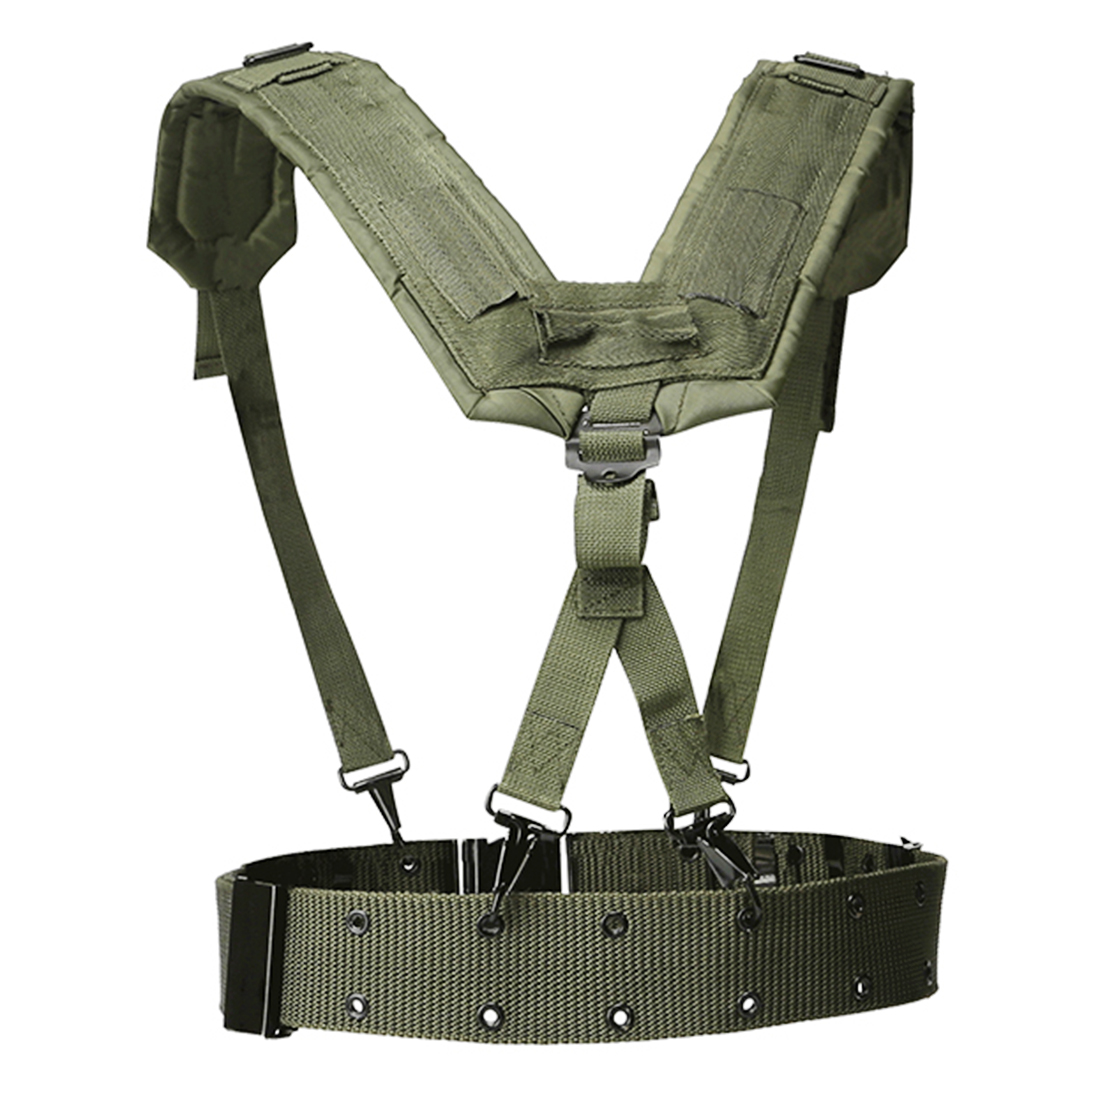 HTB12DxbaZfrK1Rjy0Fmq6xhEXXar - HS Adjustable Tactical Lightweight Waist Belt Harness Set for Outdoor Military Shoulder Waist Protective Band for Adult